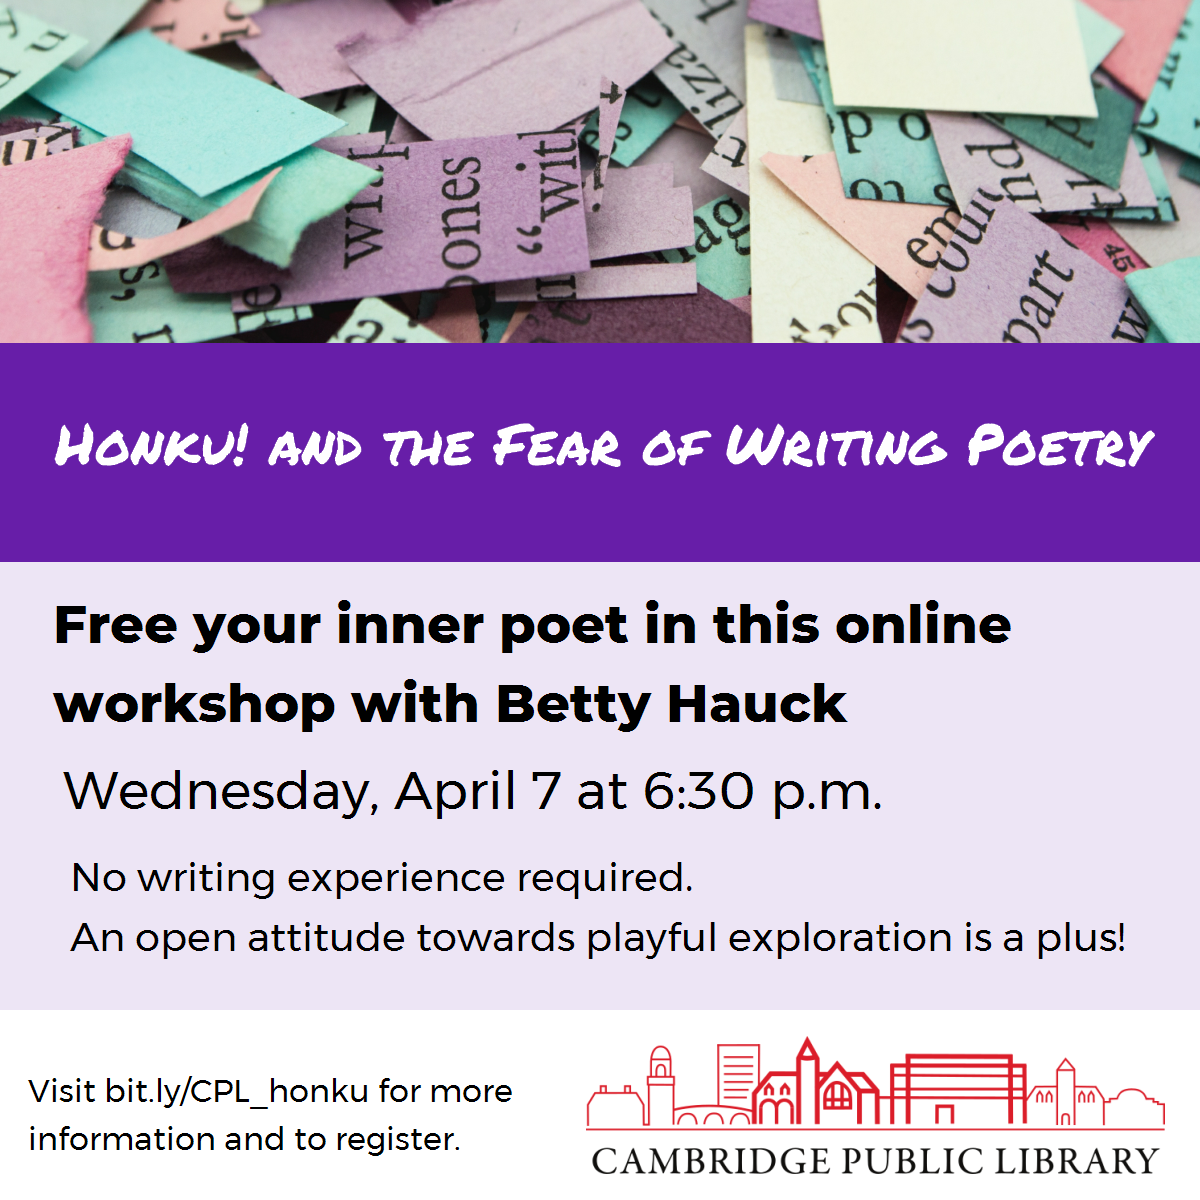 Honku! and the Fear of Writing Poetry